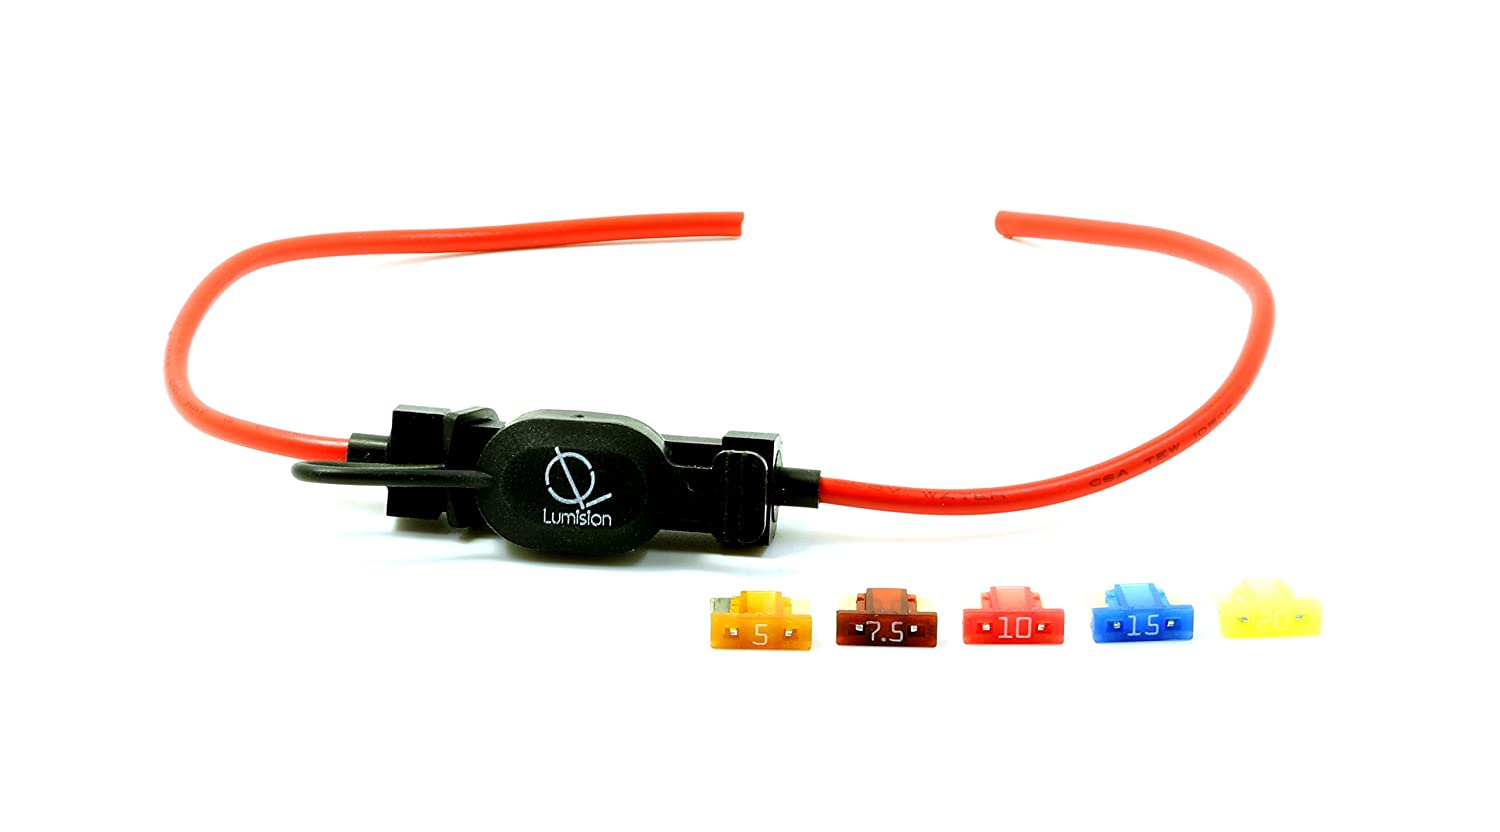 Lumision 16 AWG Low Profile Mini Blade Style APS ATT Fuse Holder Car / Boat + 5, 7.5, 10, 15, 20A Fuse Set